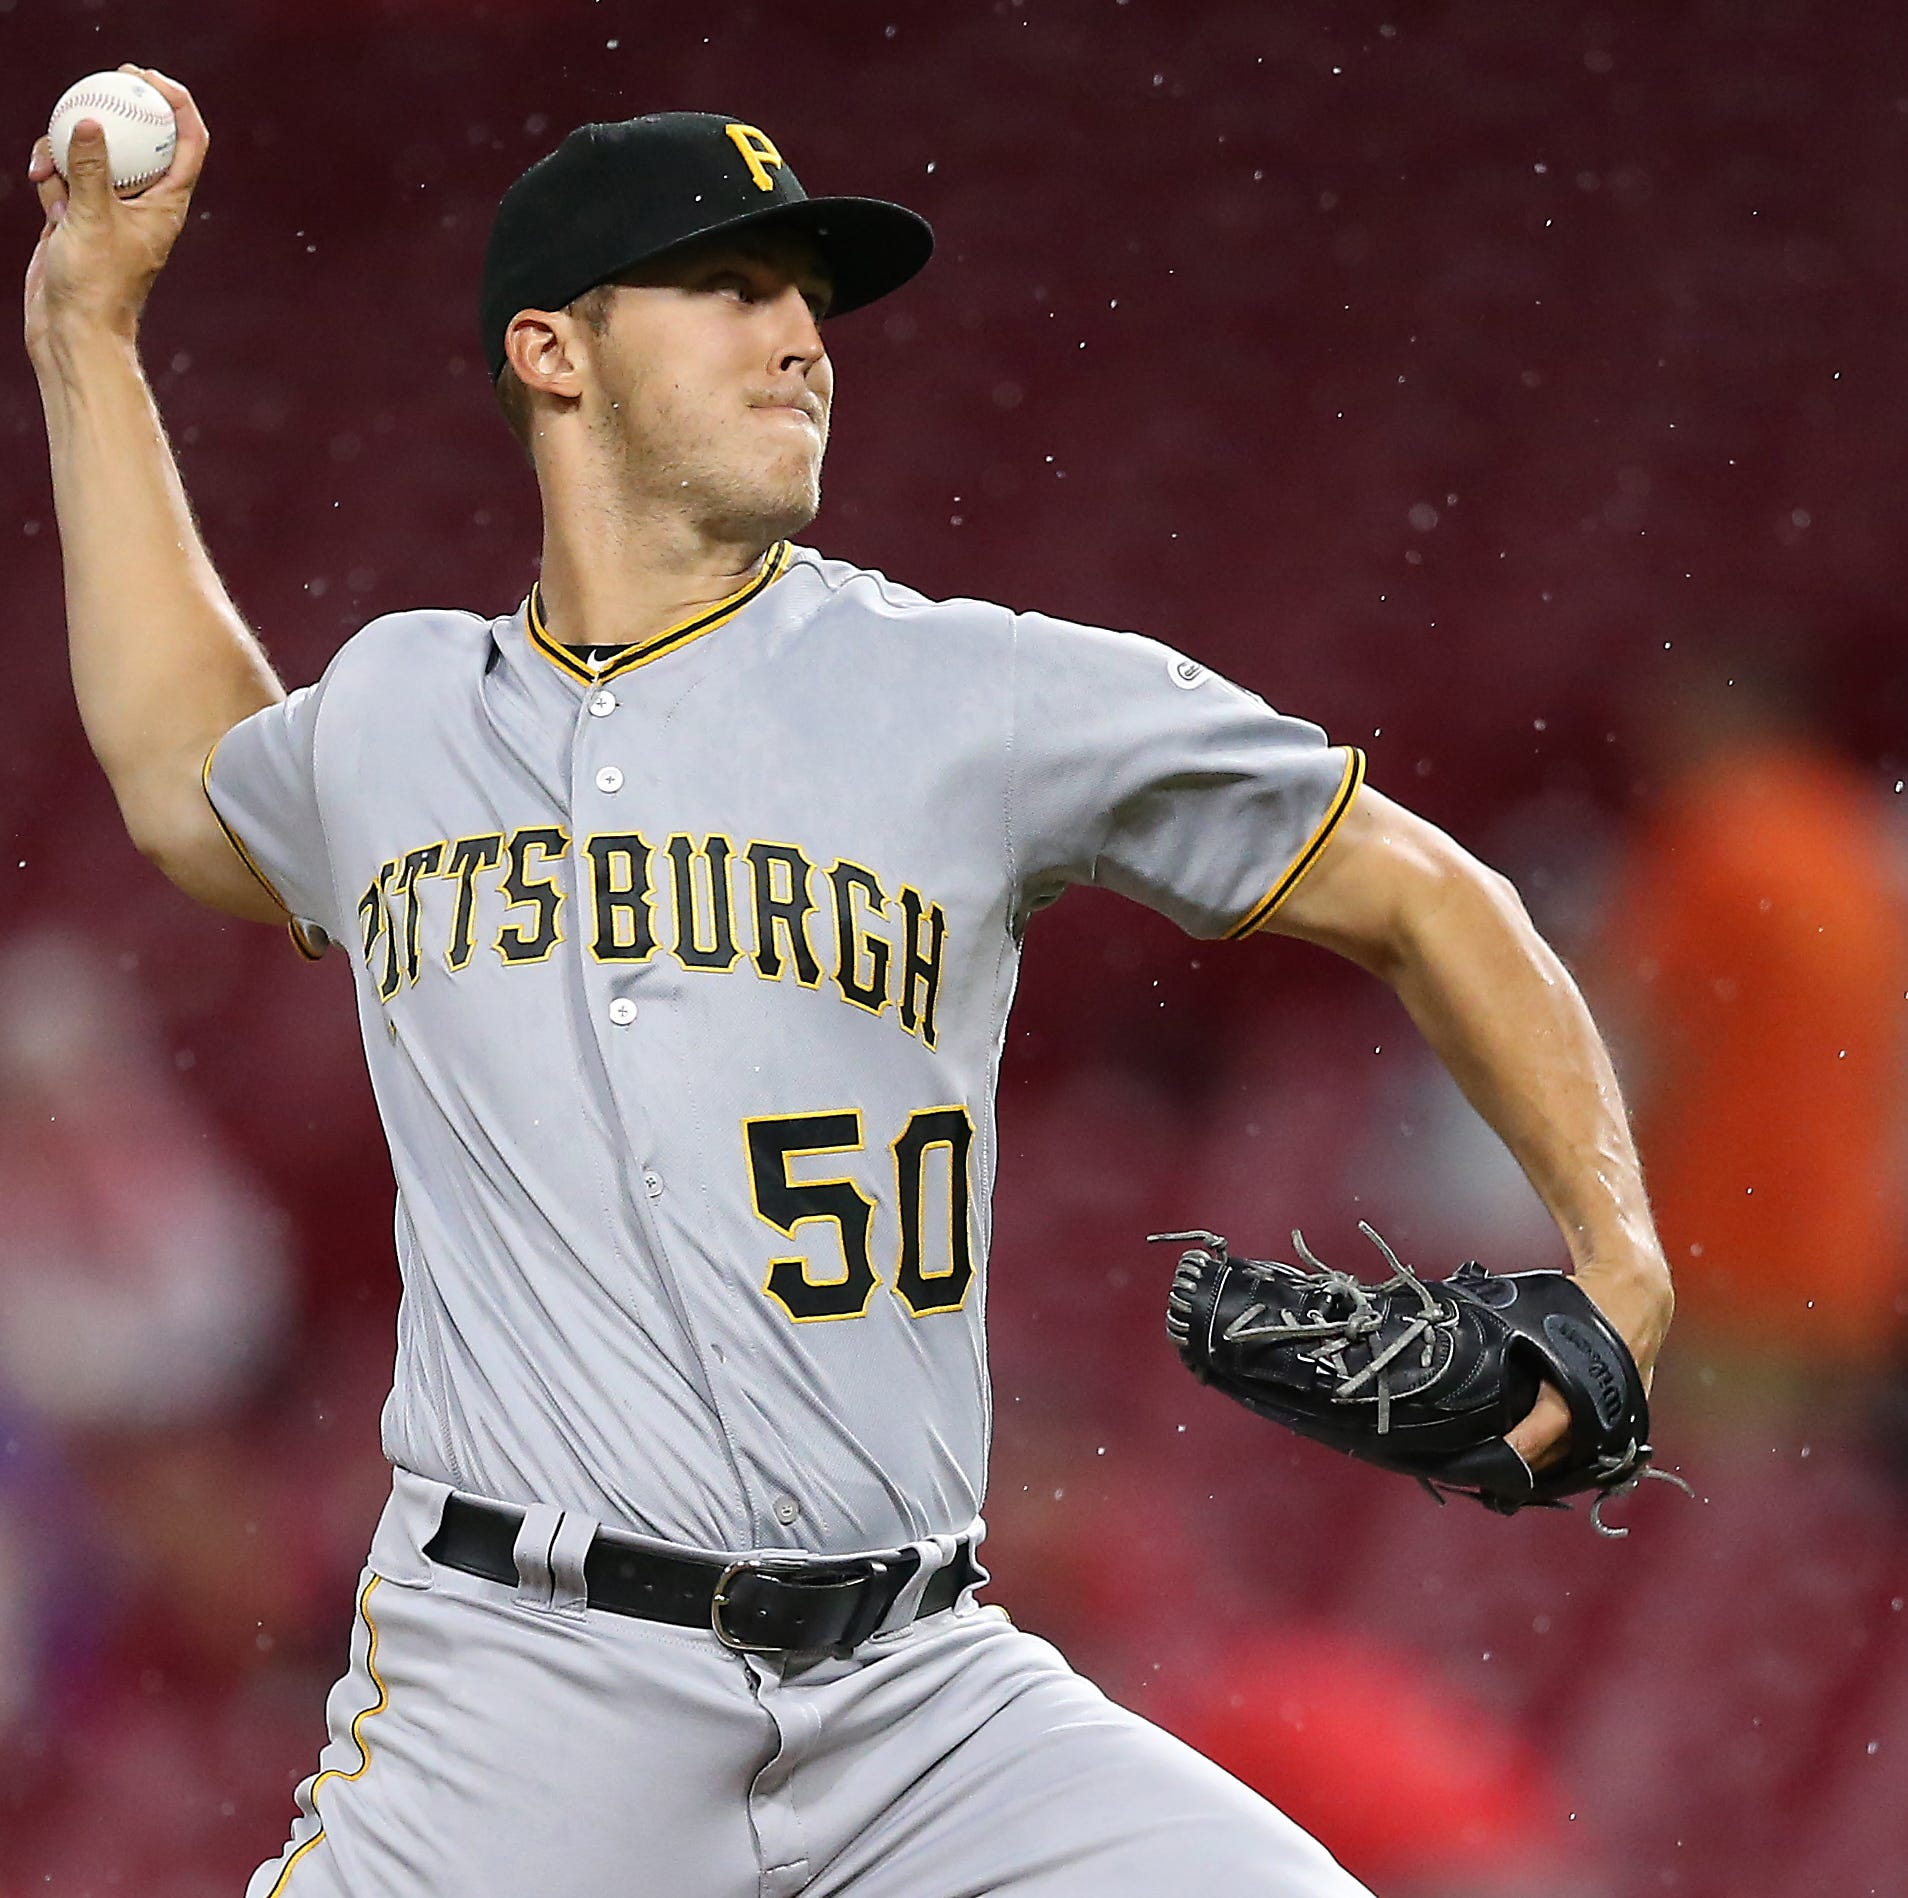 Pittsburgh Pirates starting pitcher Jameson Taillon (50) delivers in the first inning during a National League baseball between the Pittsburgh Pirates and the Cincinnati Reds, Friday, July 20, 2018, at Great American Ball Park in Cincinnati.